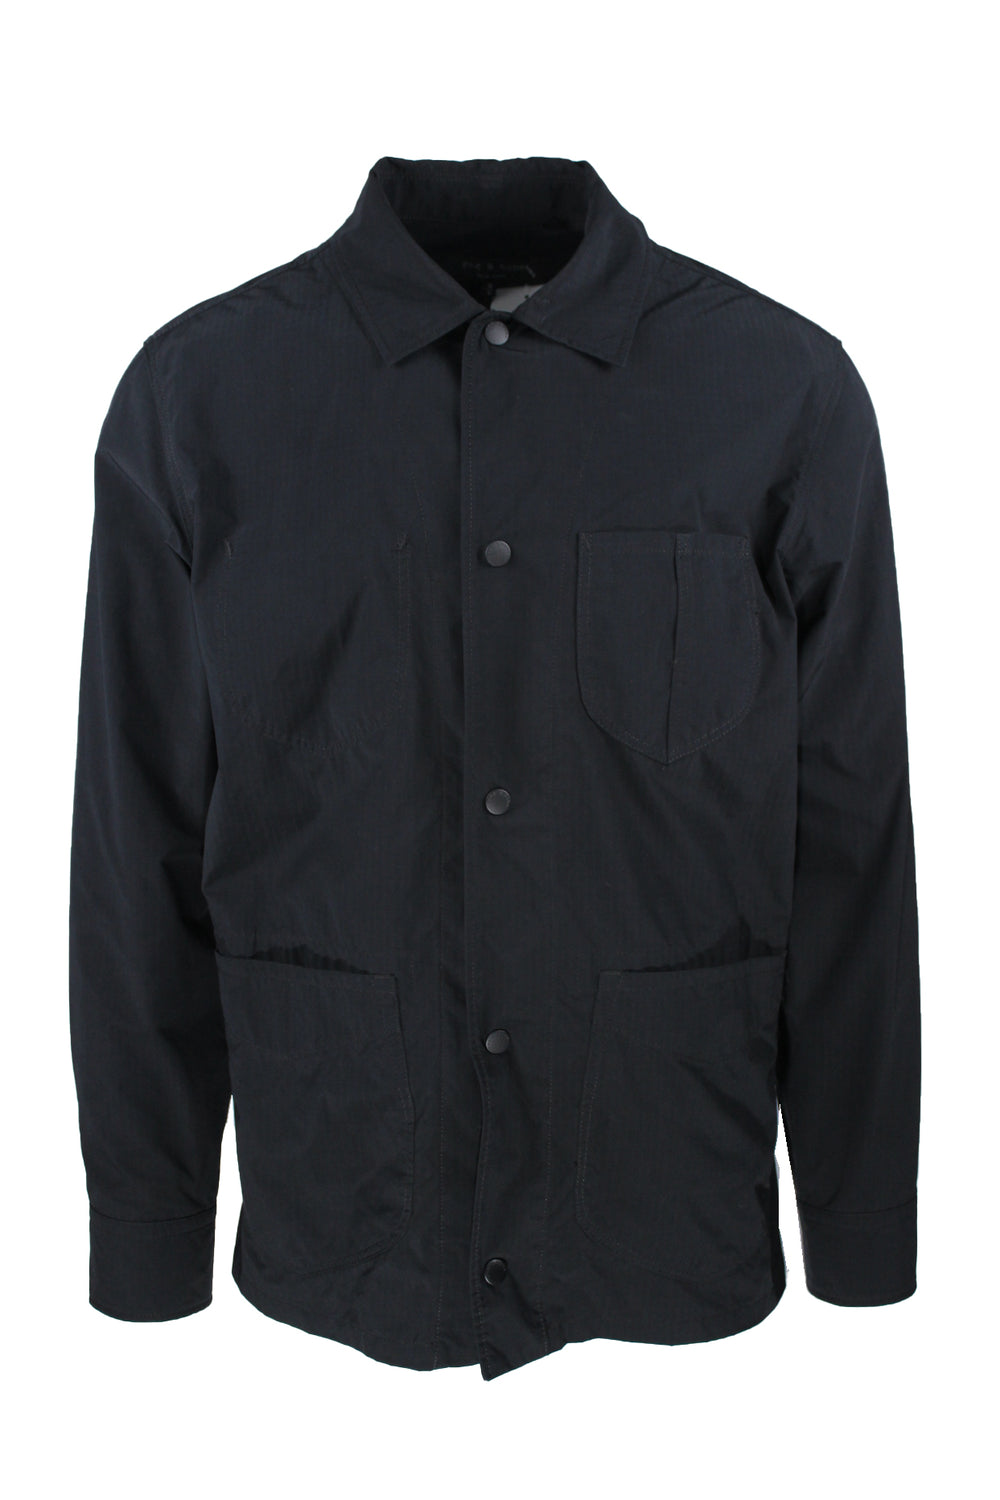 rag & bone black ripstop lightweight jacket. features branded front snap button closure with pockets at front.